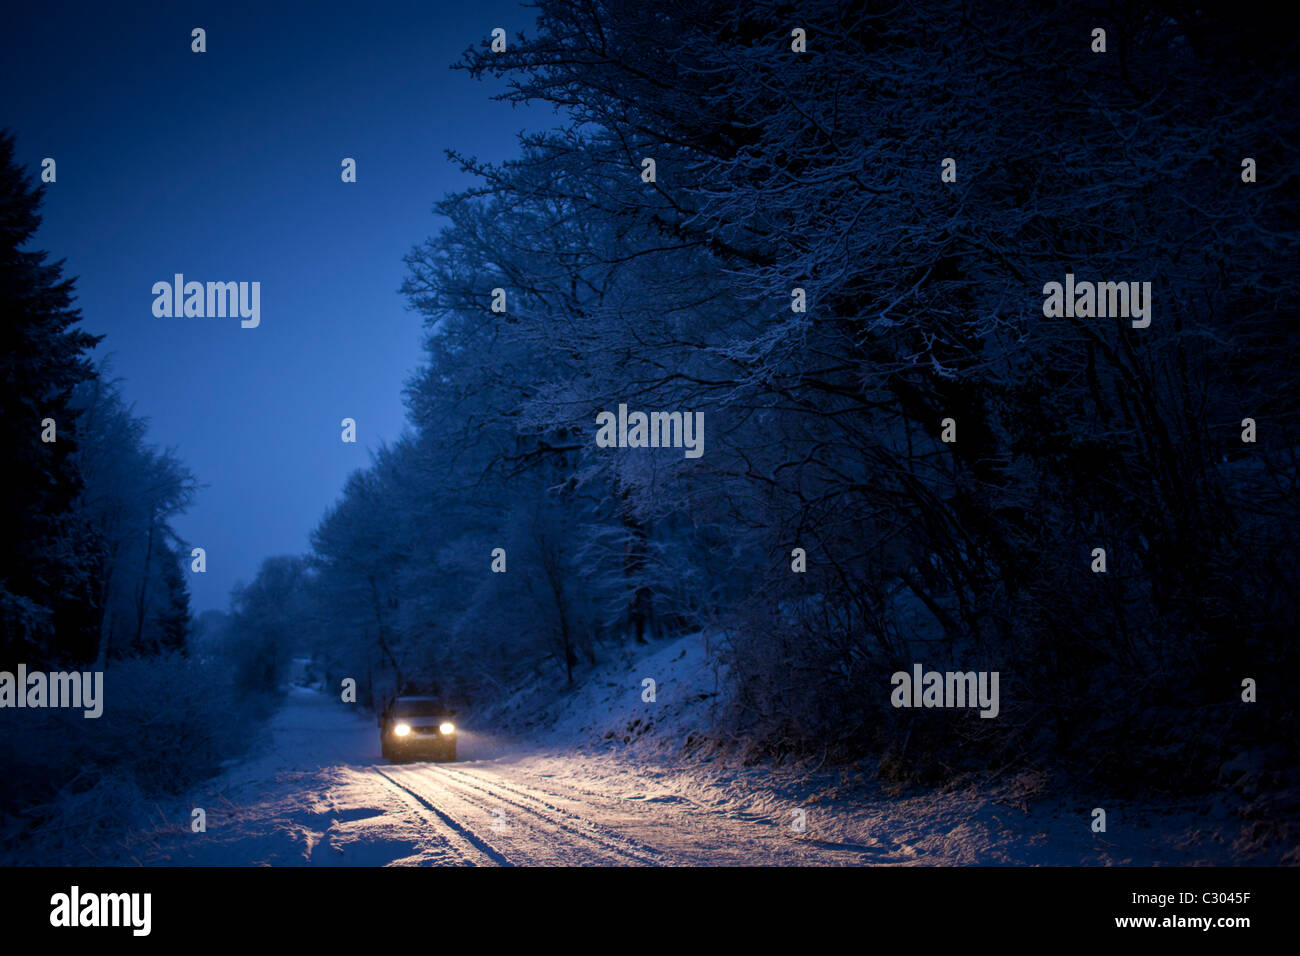 Four wheel drive car in traditional snow scene in The Cotswolds, Swinbrook, Oxfordshire, United Kingdom - Stock Image